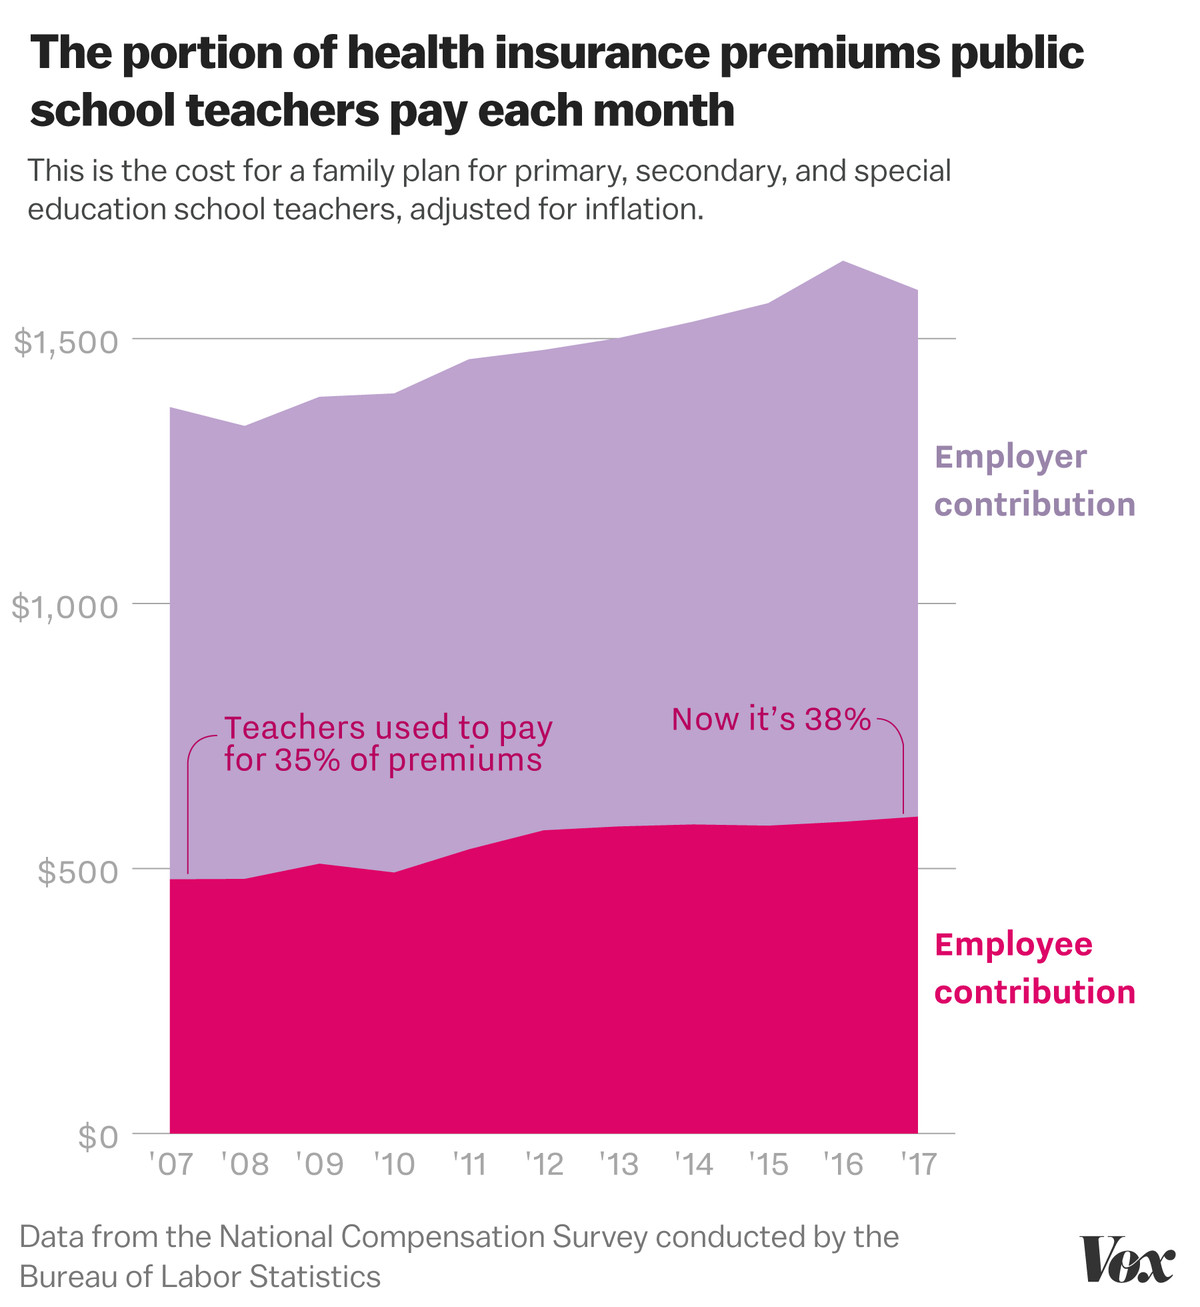 Teacher pay is falling  Their health insurance costs are